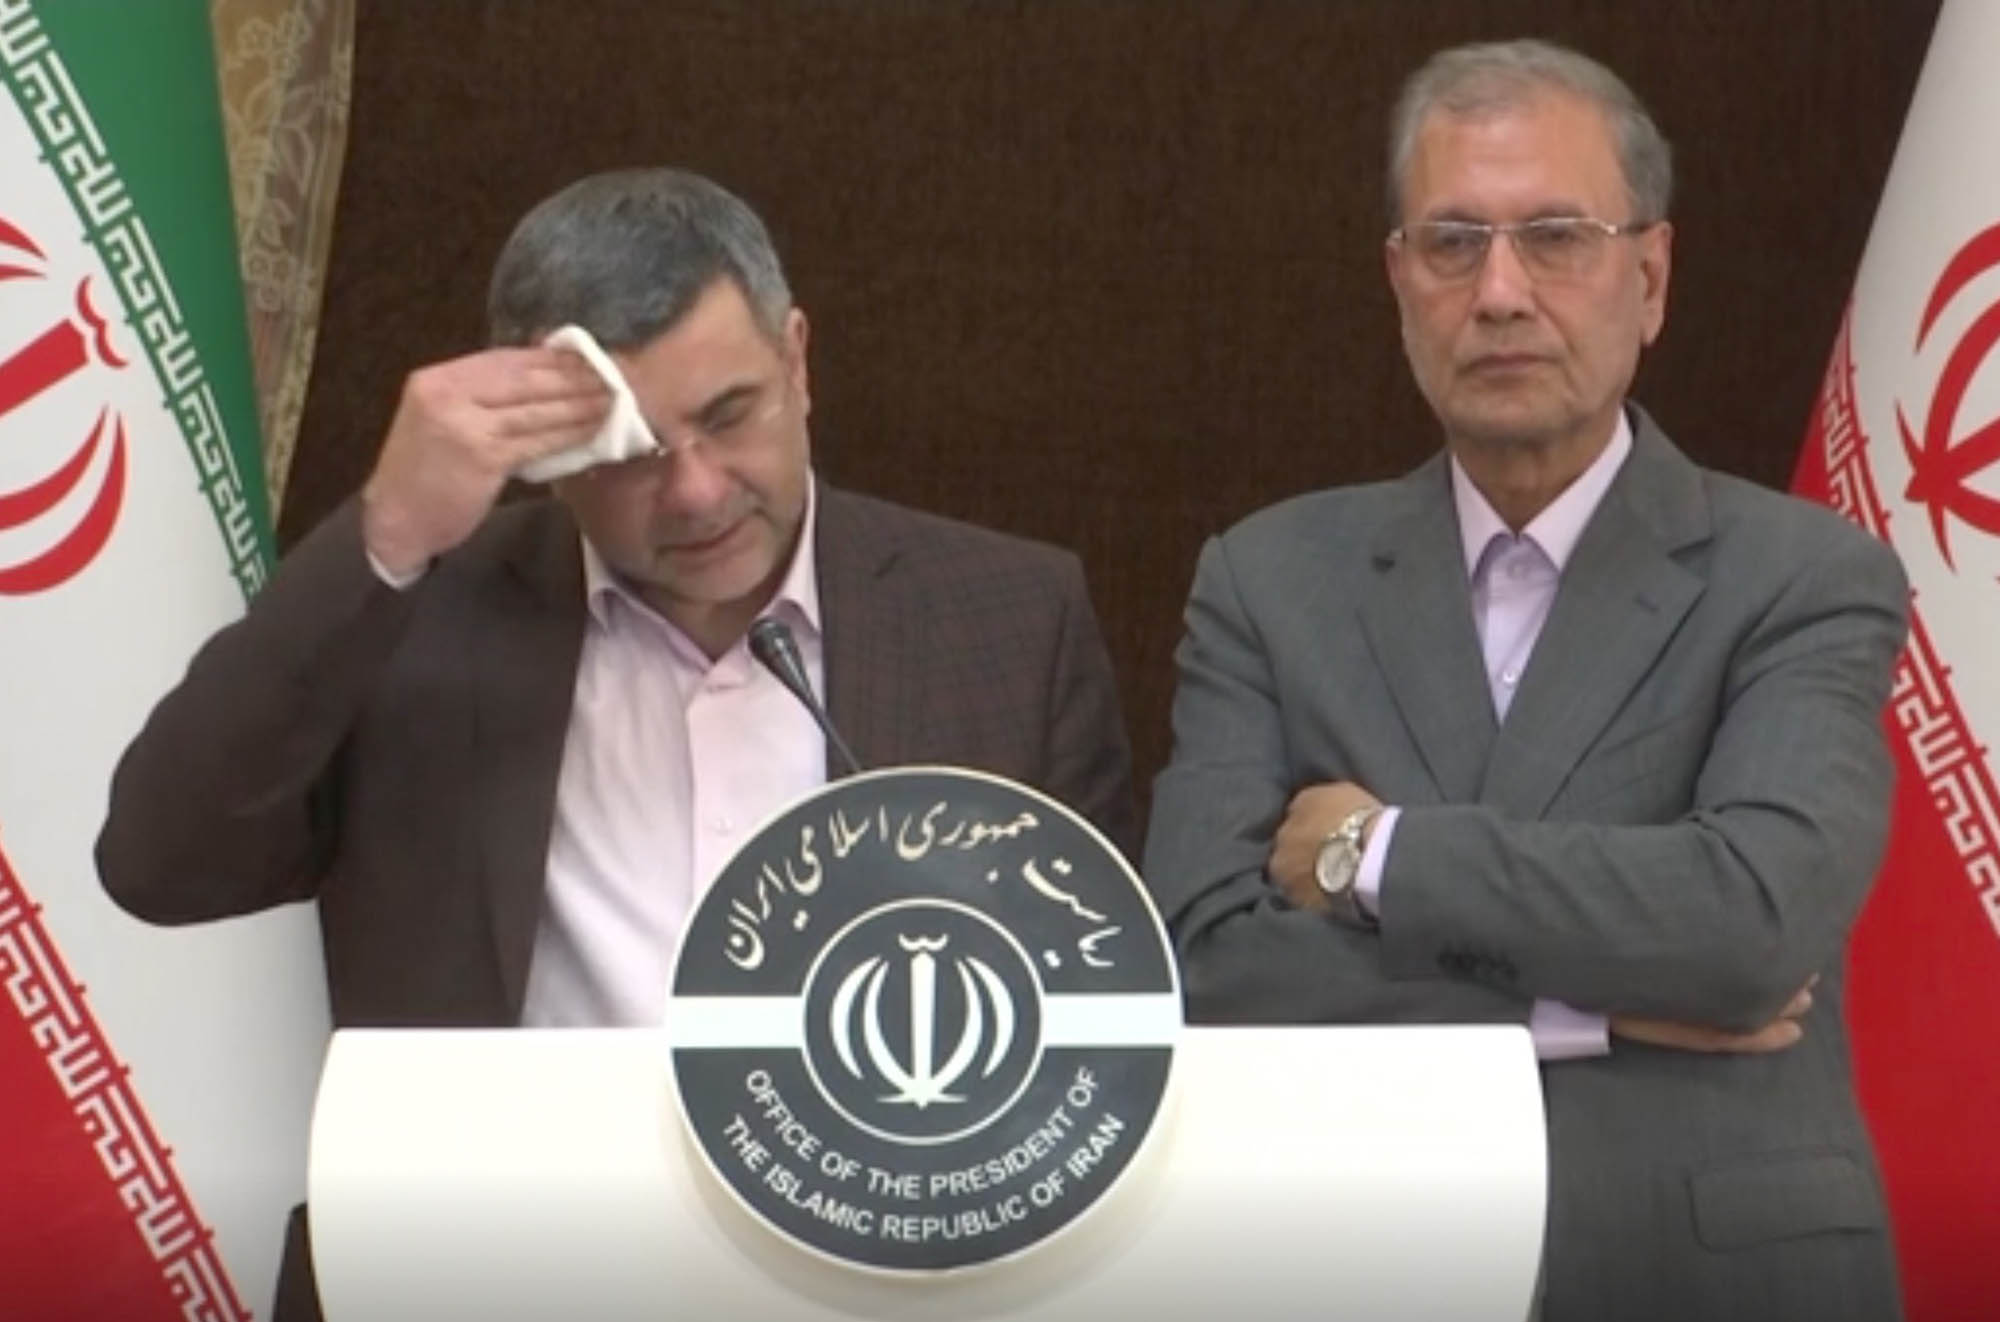 This image made from video shows the head of Iran's counter-coronavirus task force, Iraj Harirchi, left, wiping his face during a press briefing with government spokesman Ali Rabiei, in Tehran, Iran, on Monday. Harirchi, has tested positive for the virus himself, authorities announced on Tuesday, amid concerns the outbreak may be far wider than officially acknowledged.